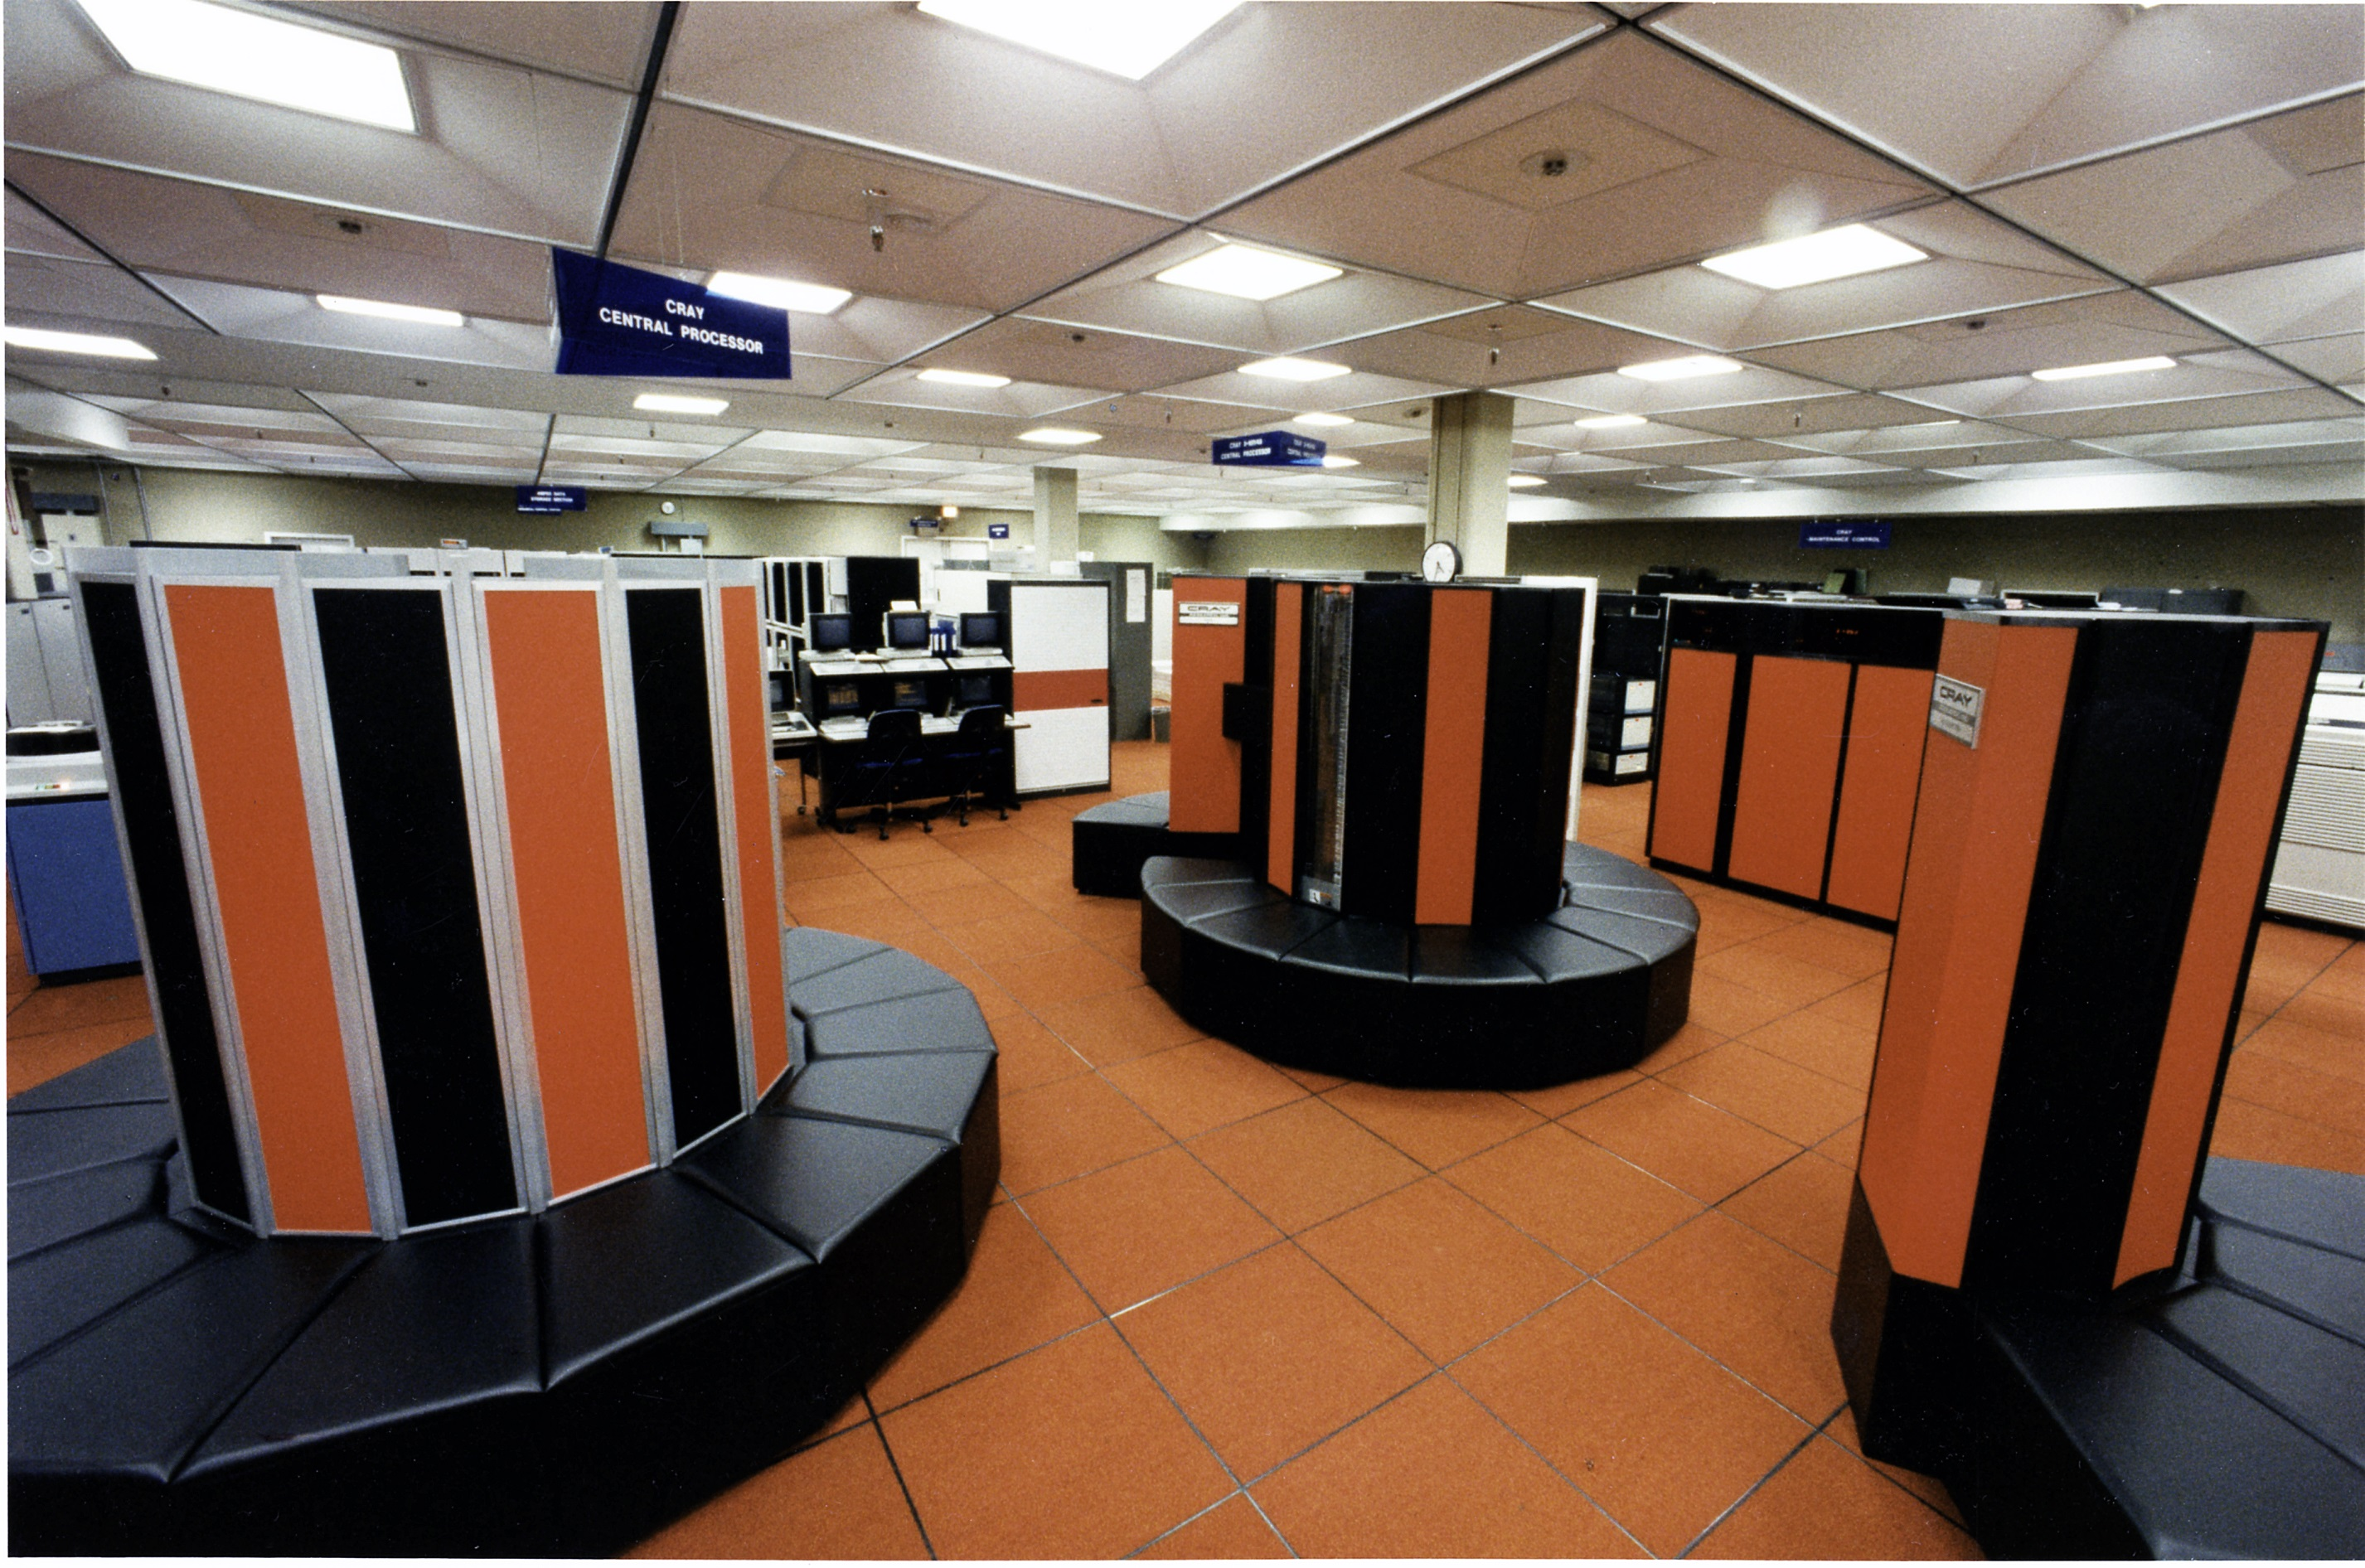 Cray supercomputer - NCAR Archives of the Cray